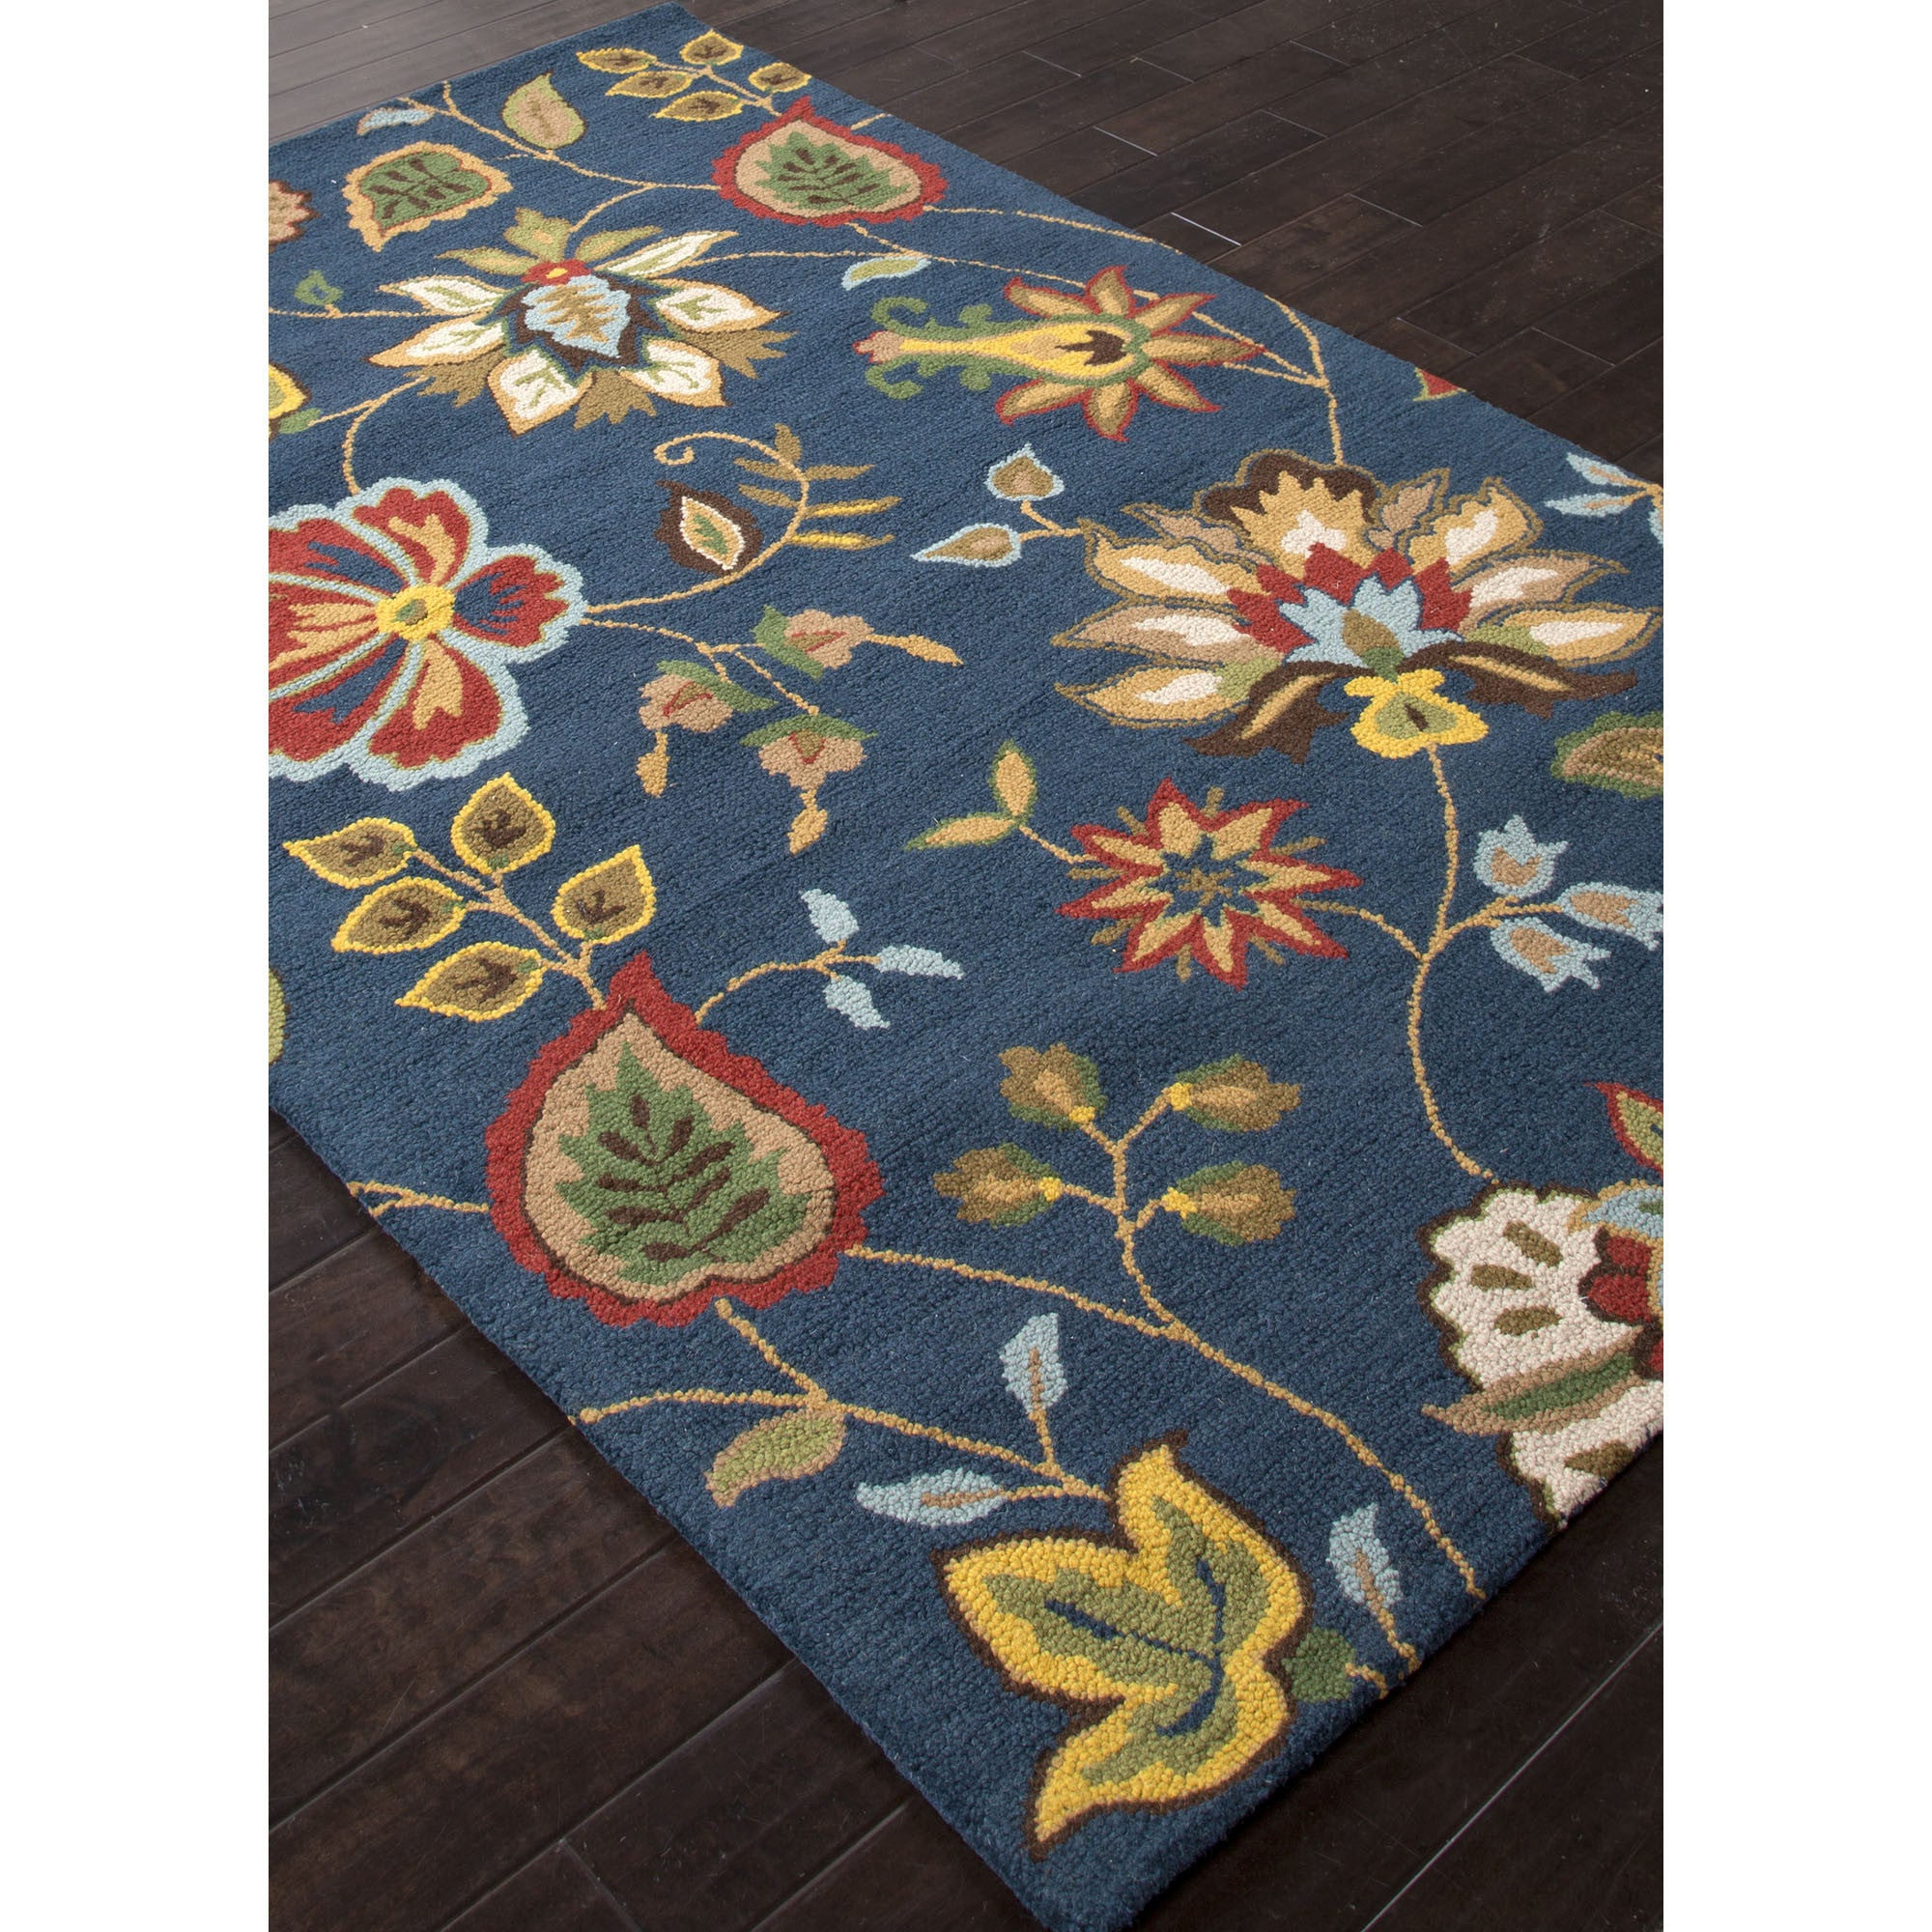 Jaipur Rugs Transitional Floral Pattern Blue Multi Wool